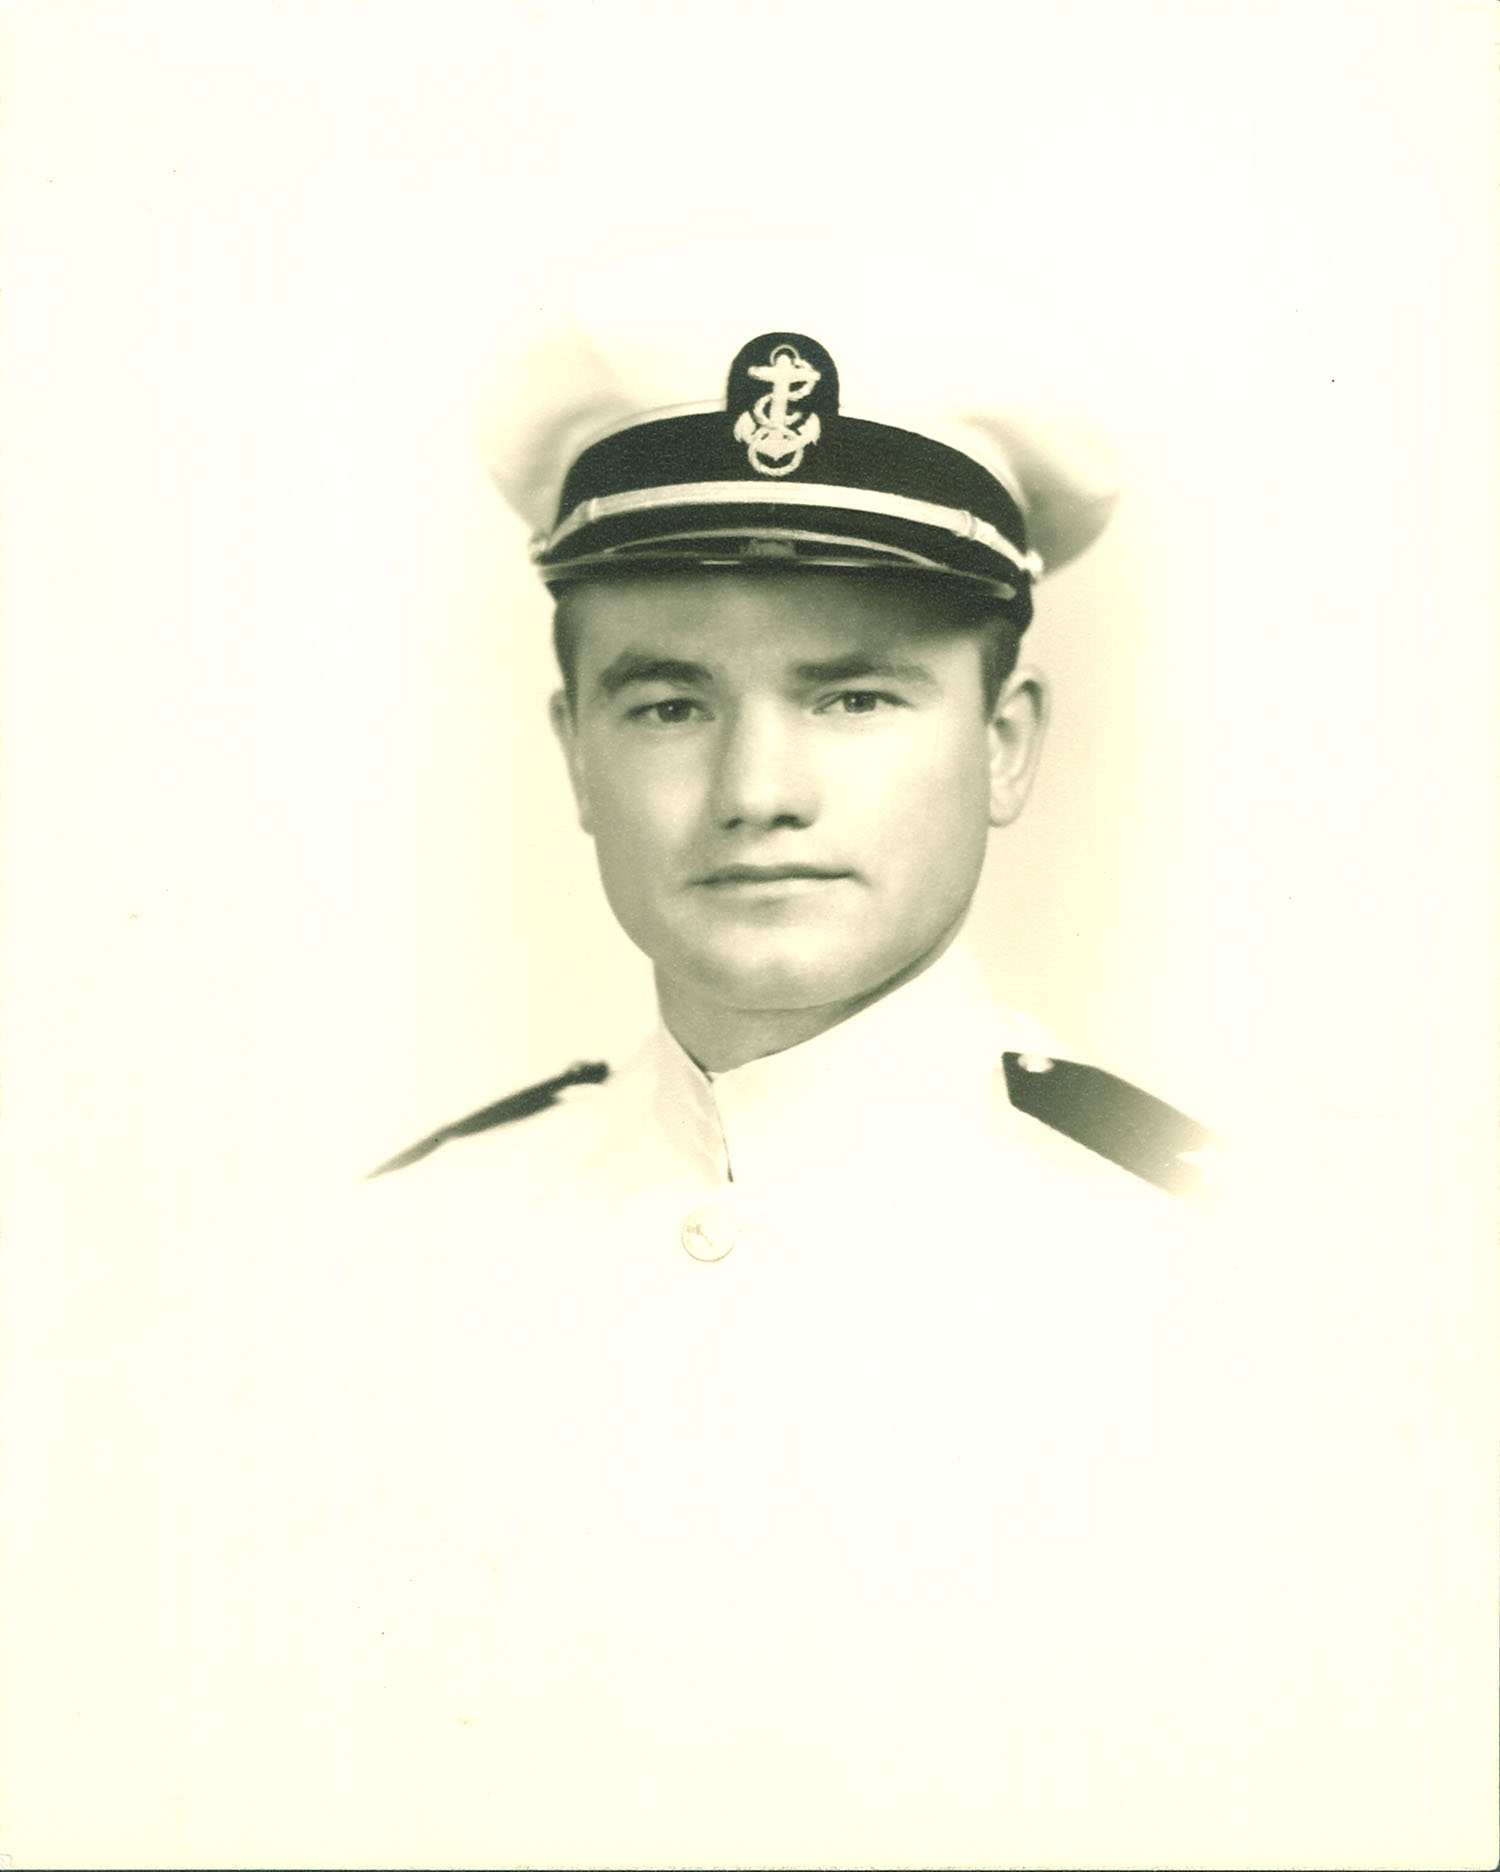 Nile Kinnick in dress whites, 1942 or 1943